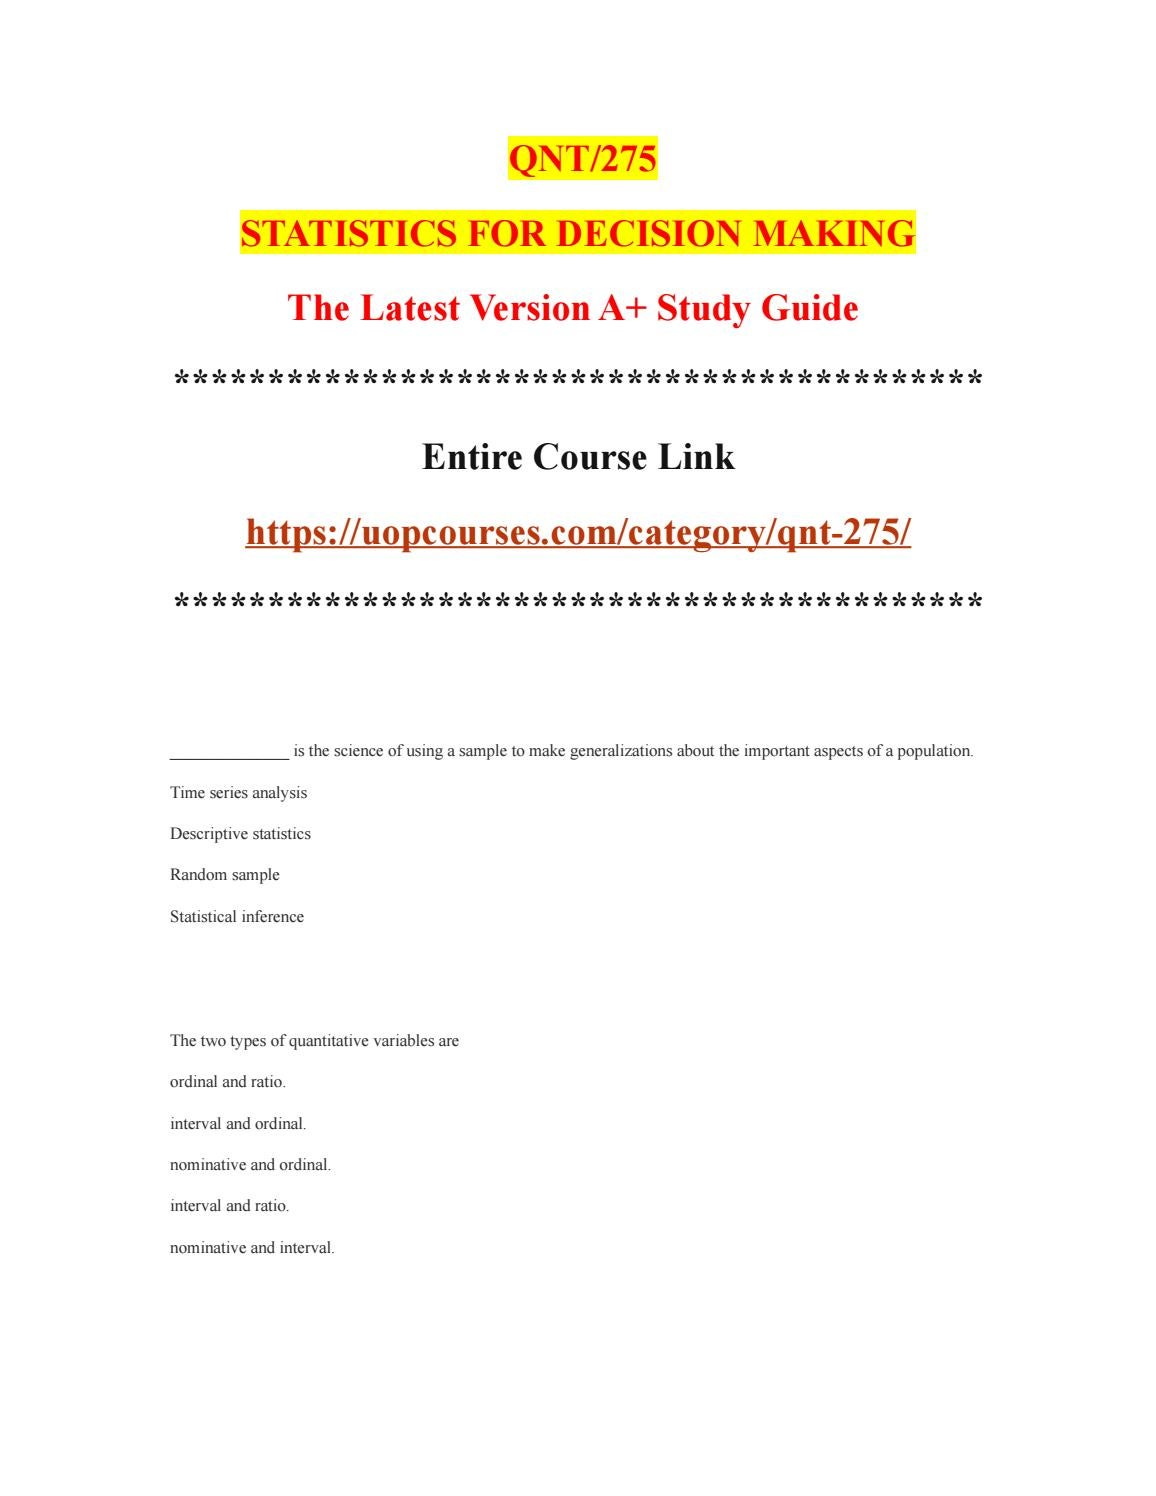 QNT 275T Entire Course - uopcourses com by uopx009 - issuu